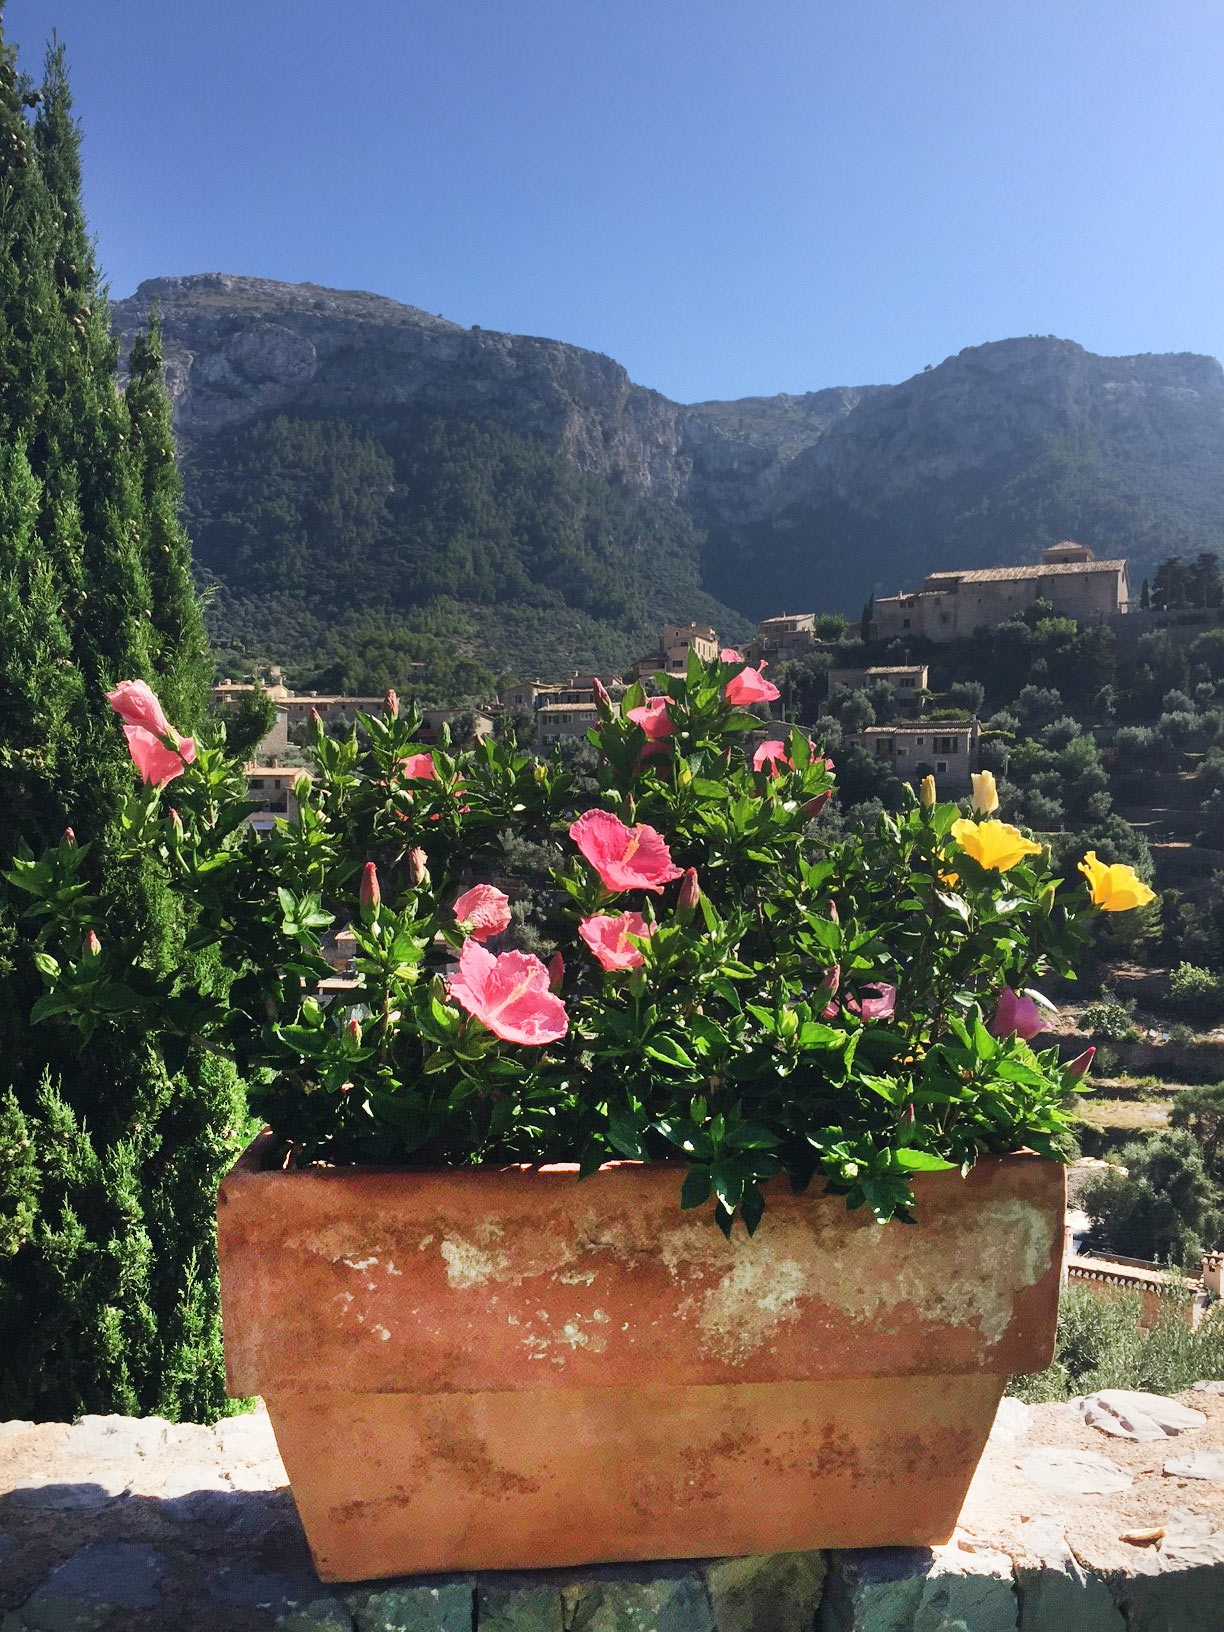 A pot of pink and yellow flowers sits in front of a large mountain dotted with houses